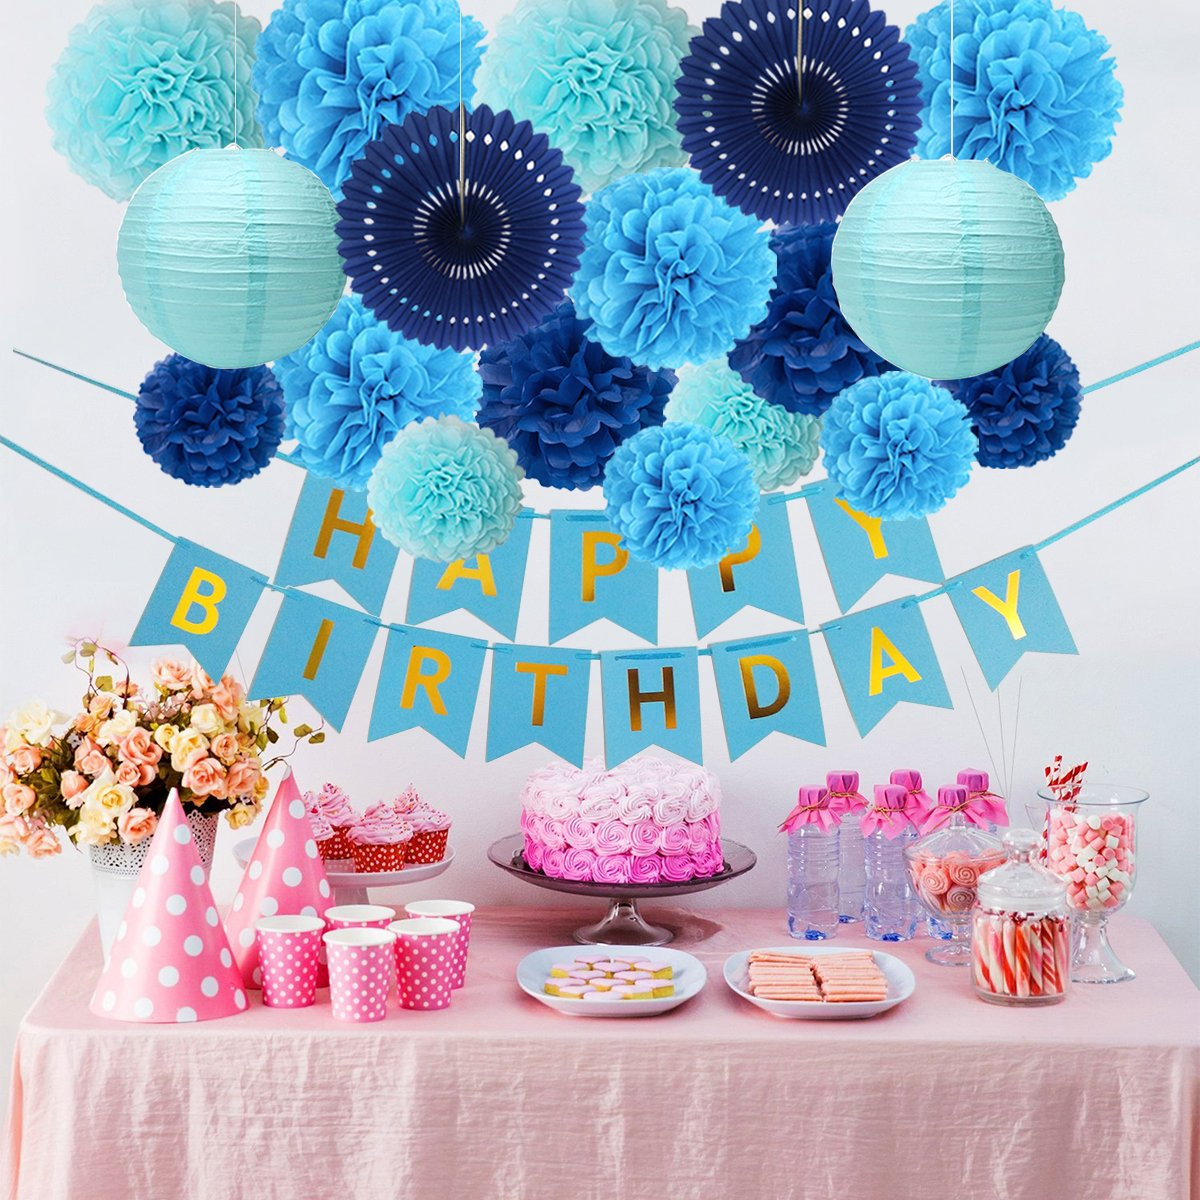 Blue Birthday Party Decorations Happy Banner 14 Paper Pom Poms 2 Lanterns Fans